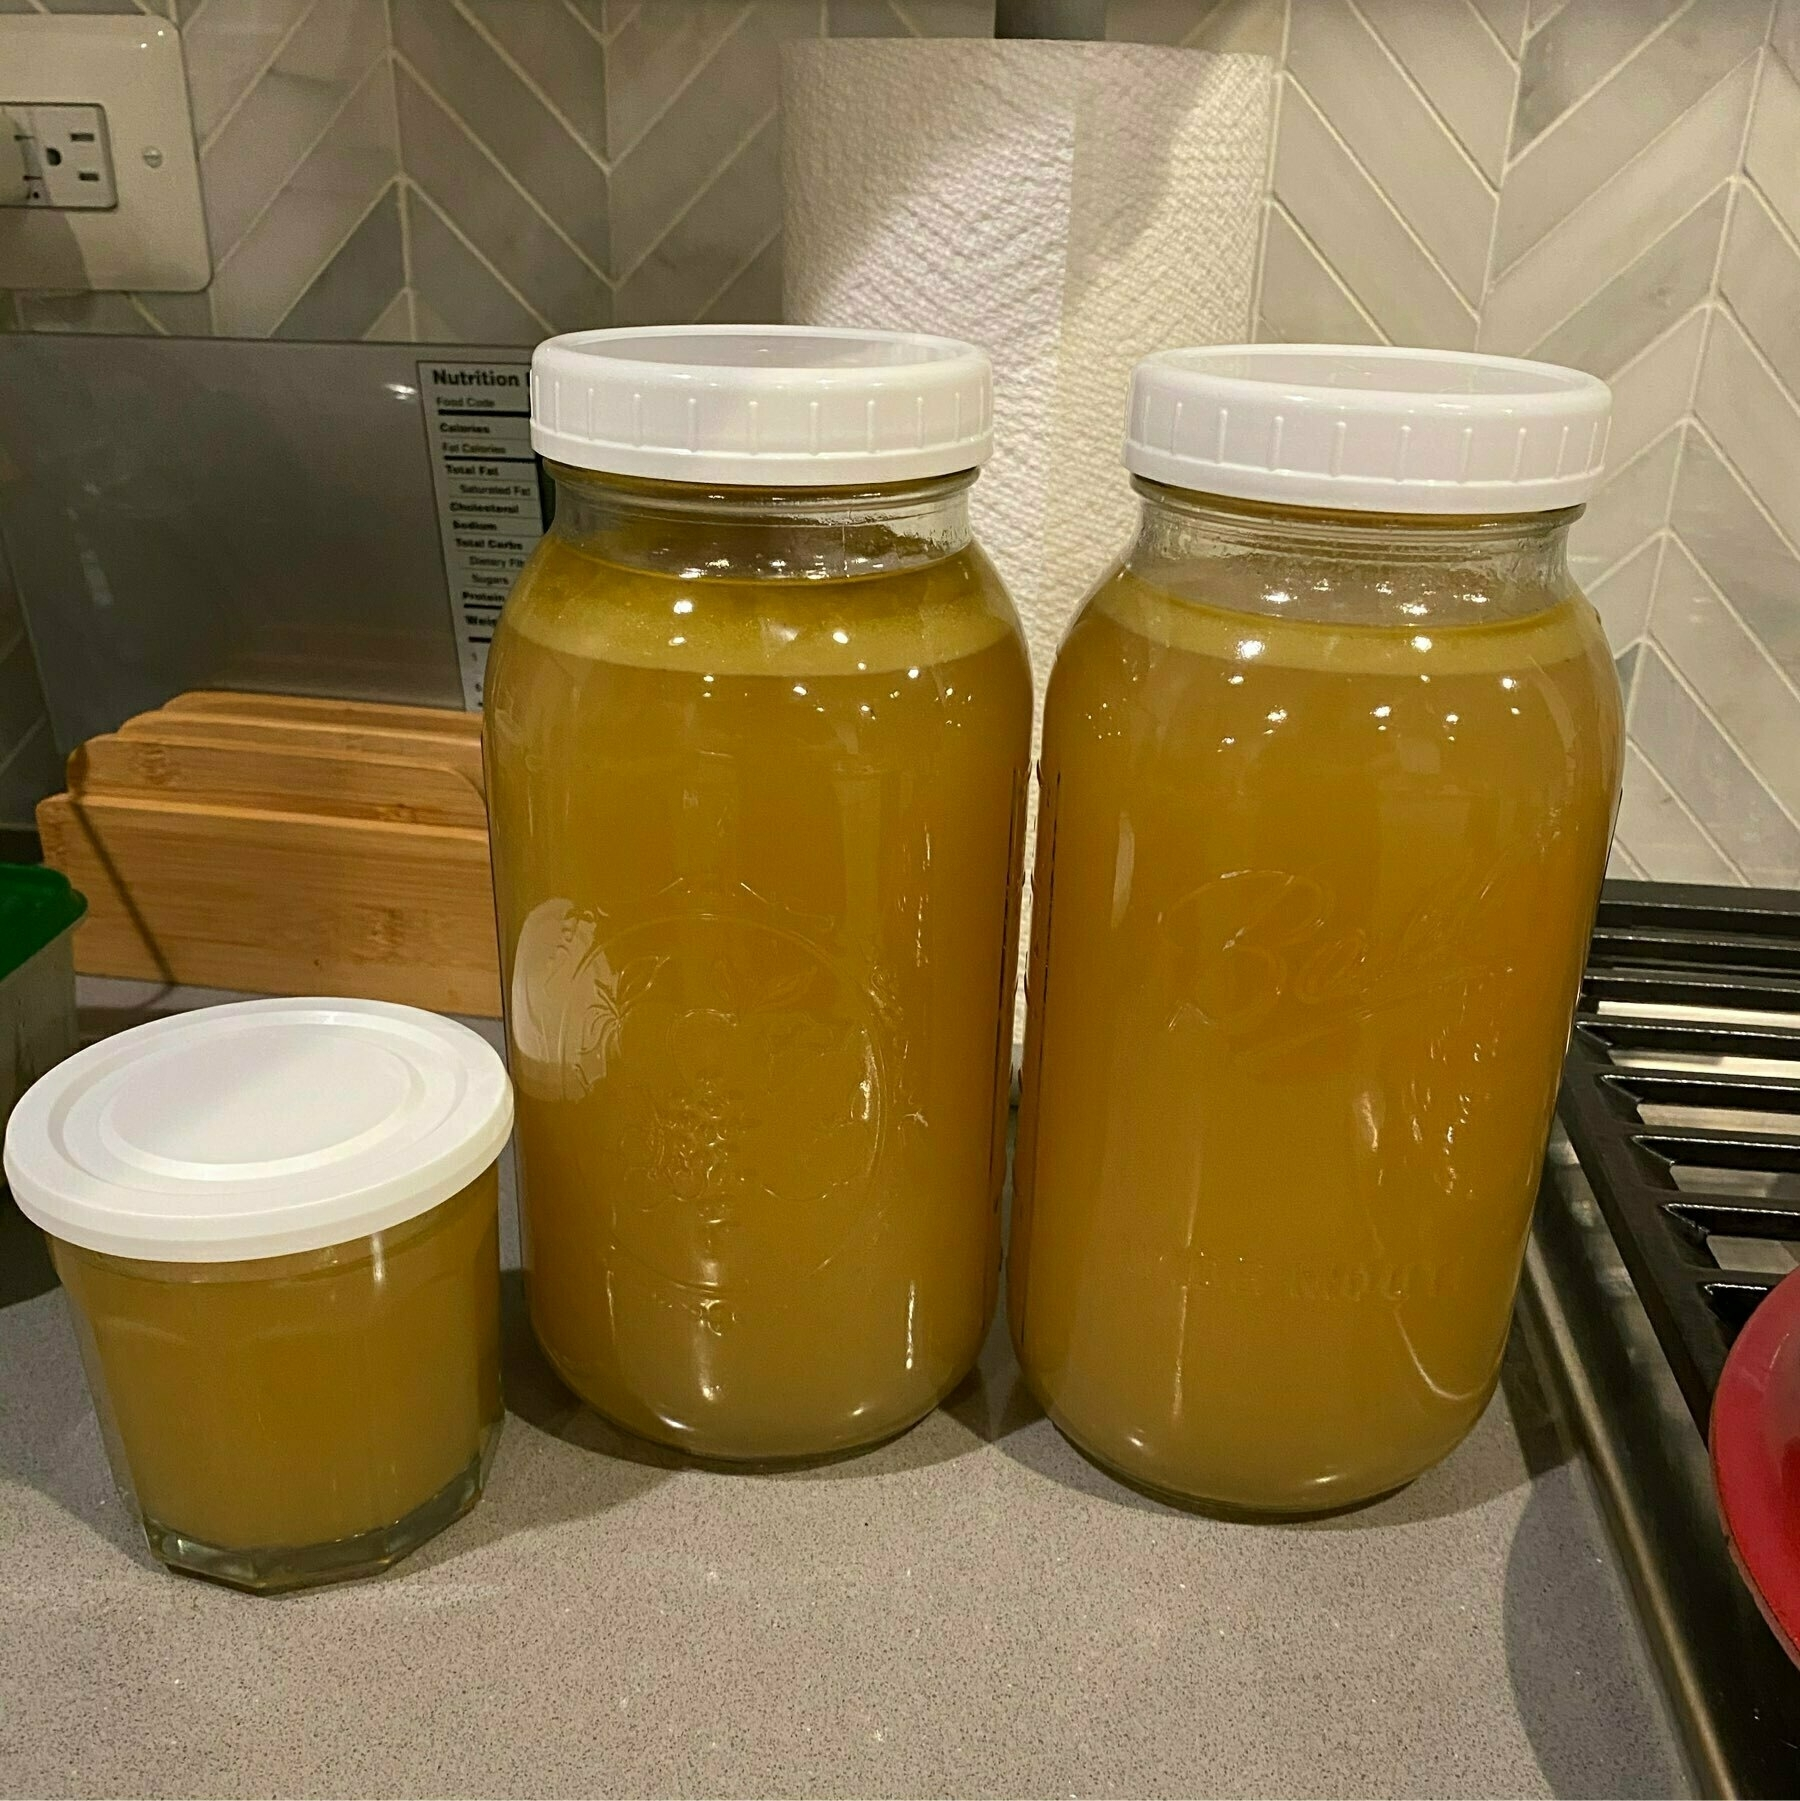 Two large mason jars of turkey stock and a small cup